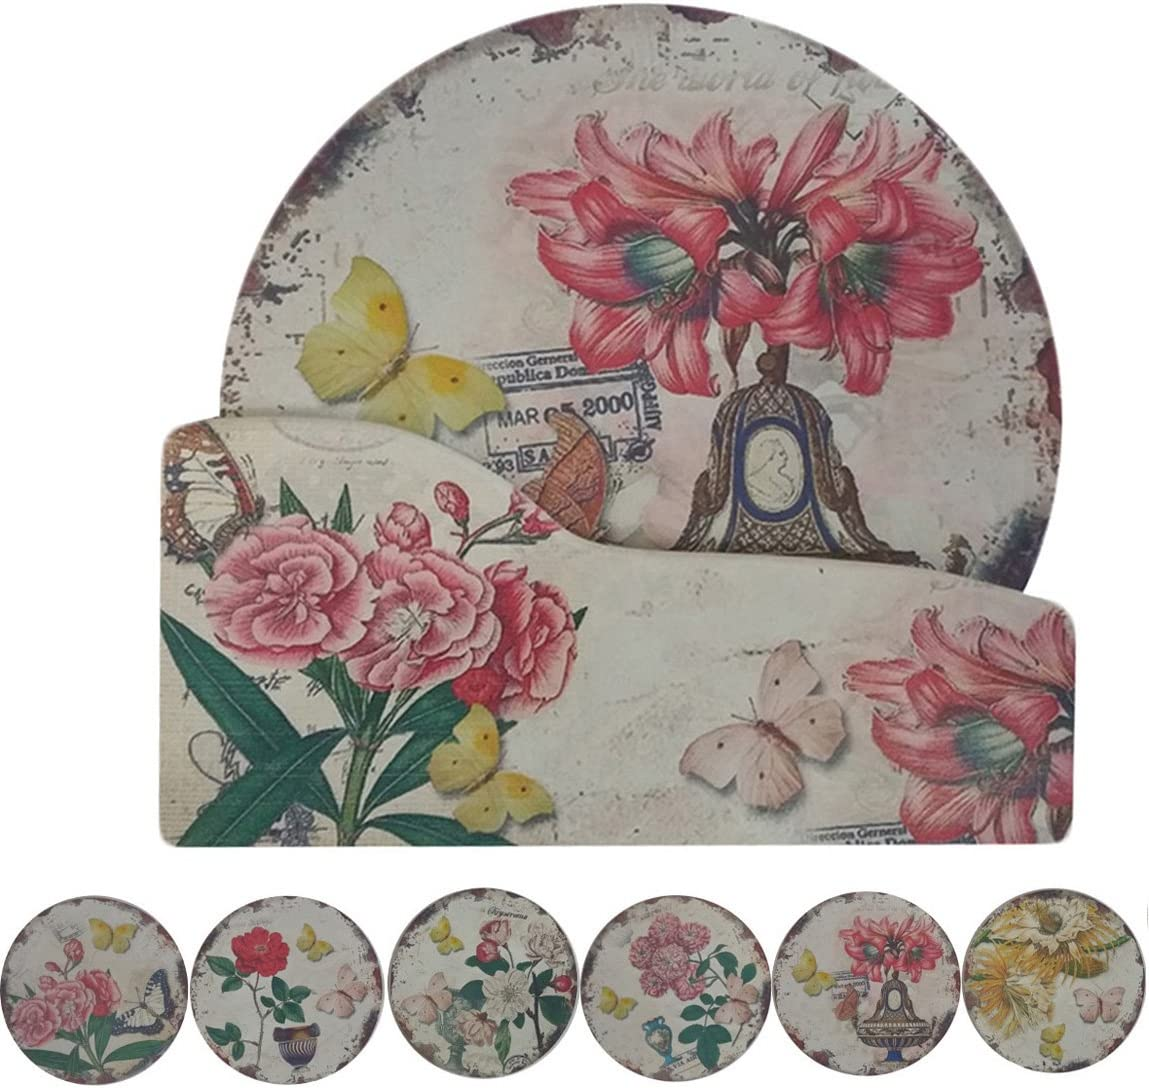 """NewFerU Cork Absorbent Coasters with Holder Decorative Round Heat Resistant Pad Mats Spoon Rest Trivet Set Table Runner Kit Large for 6 Drinks Hot Pans,Pots,Stovetop,Countertops (5.9"""" NO.6-Lily)"""